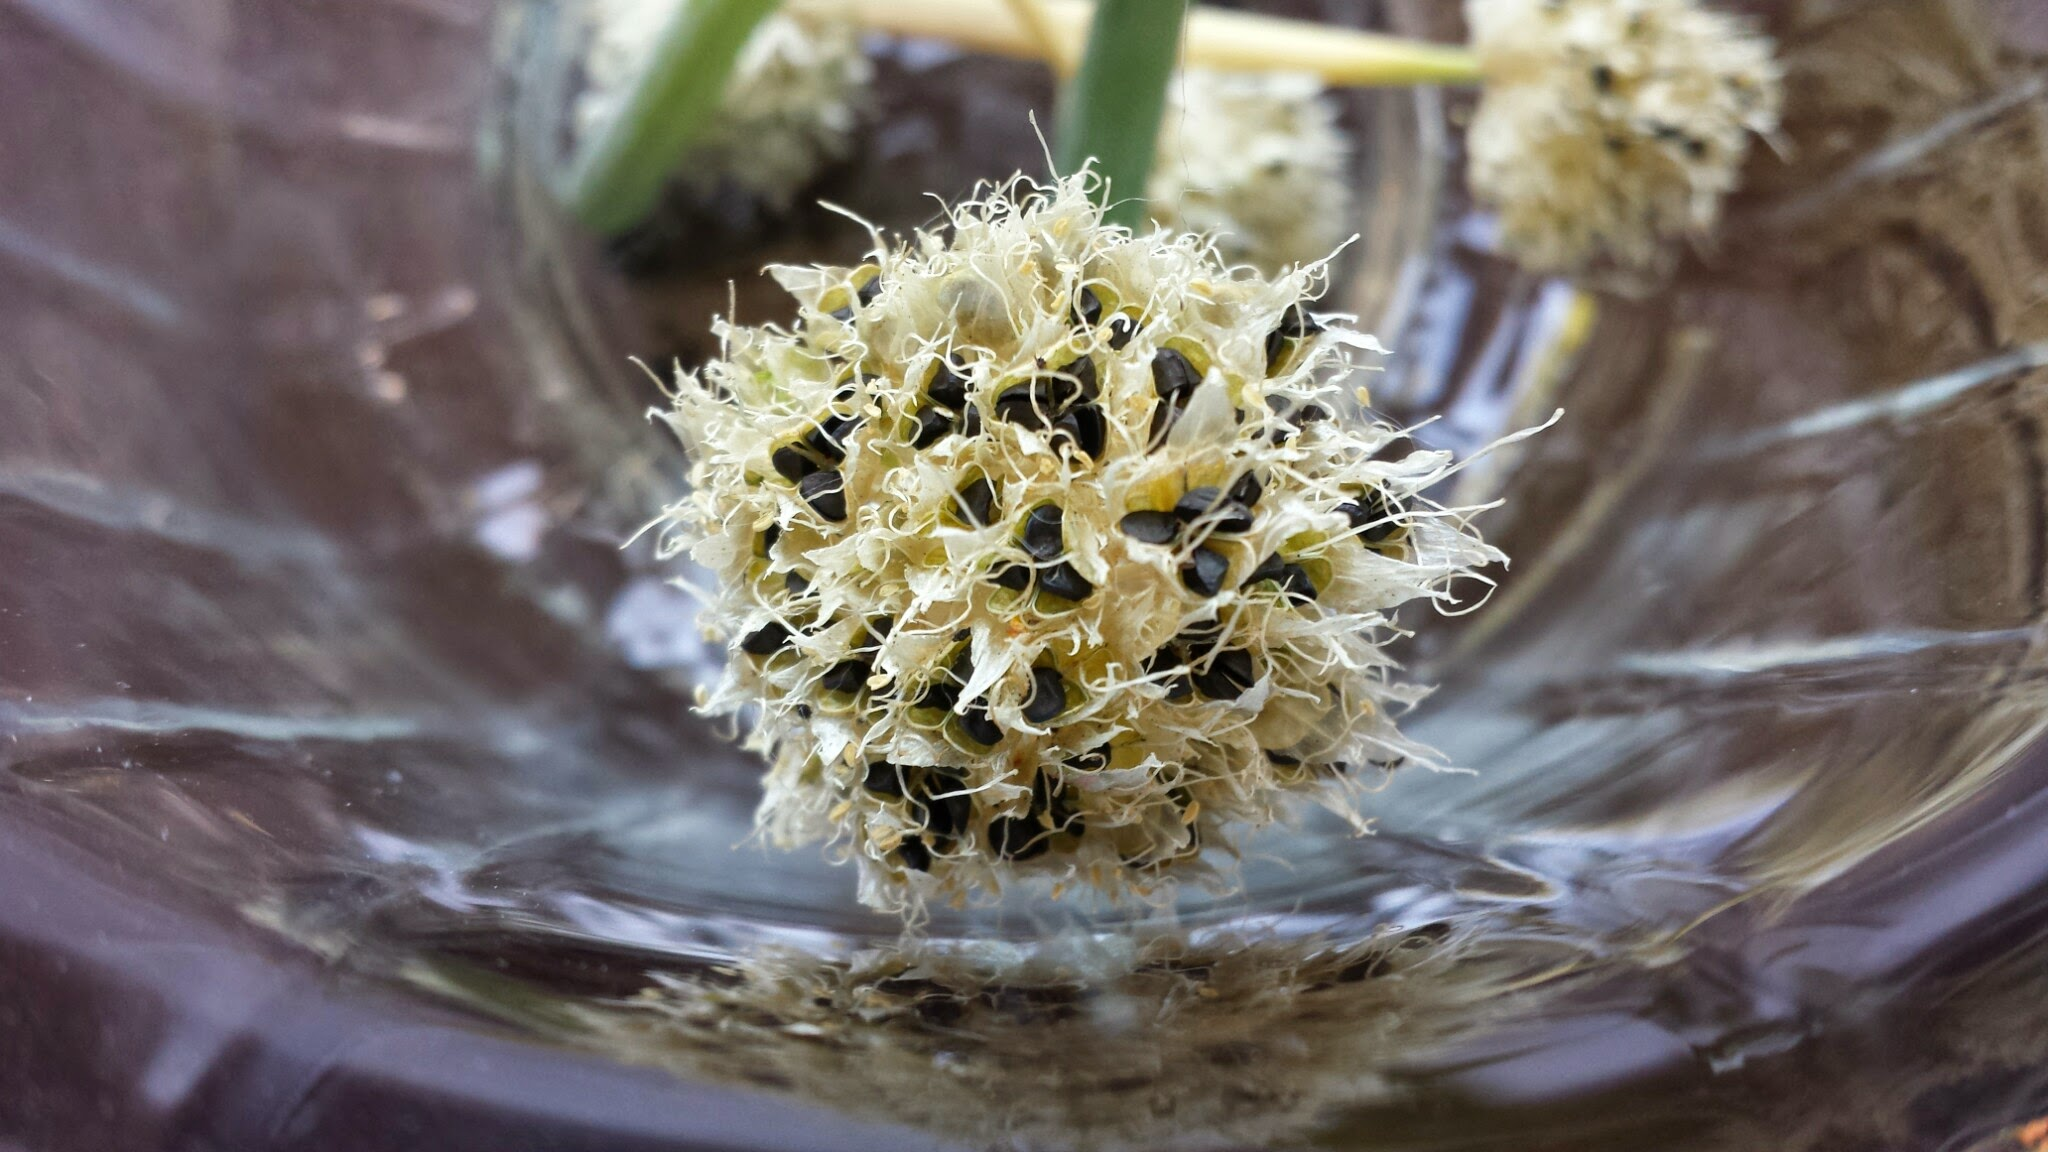 and here is a photo of the dried flower so the seeds are really obvious.